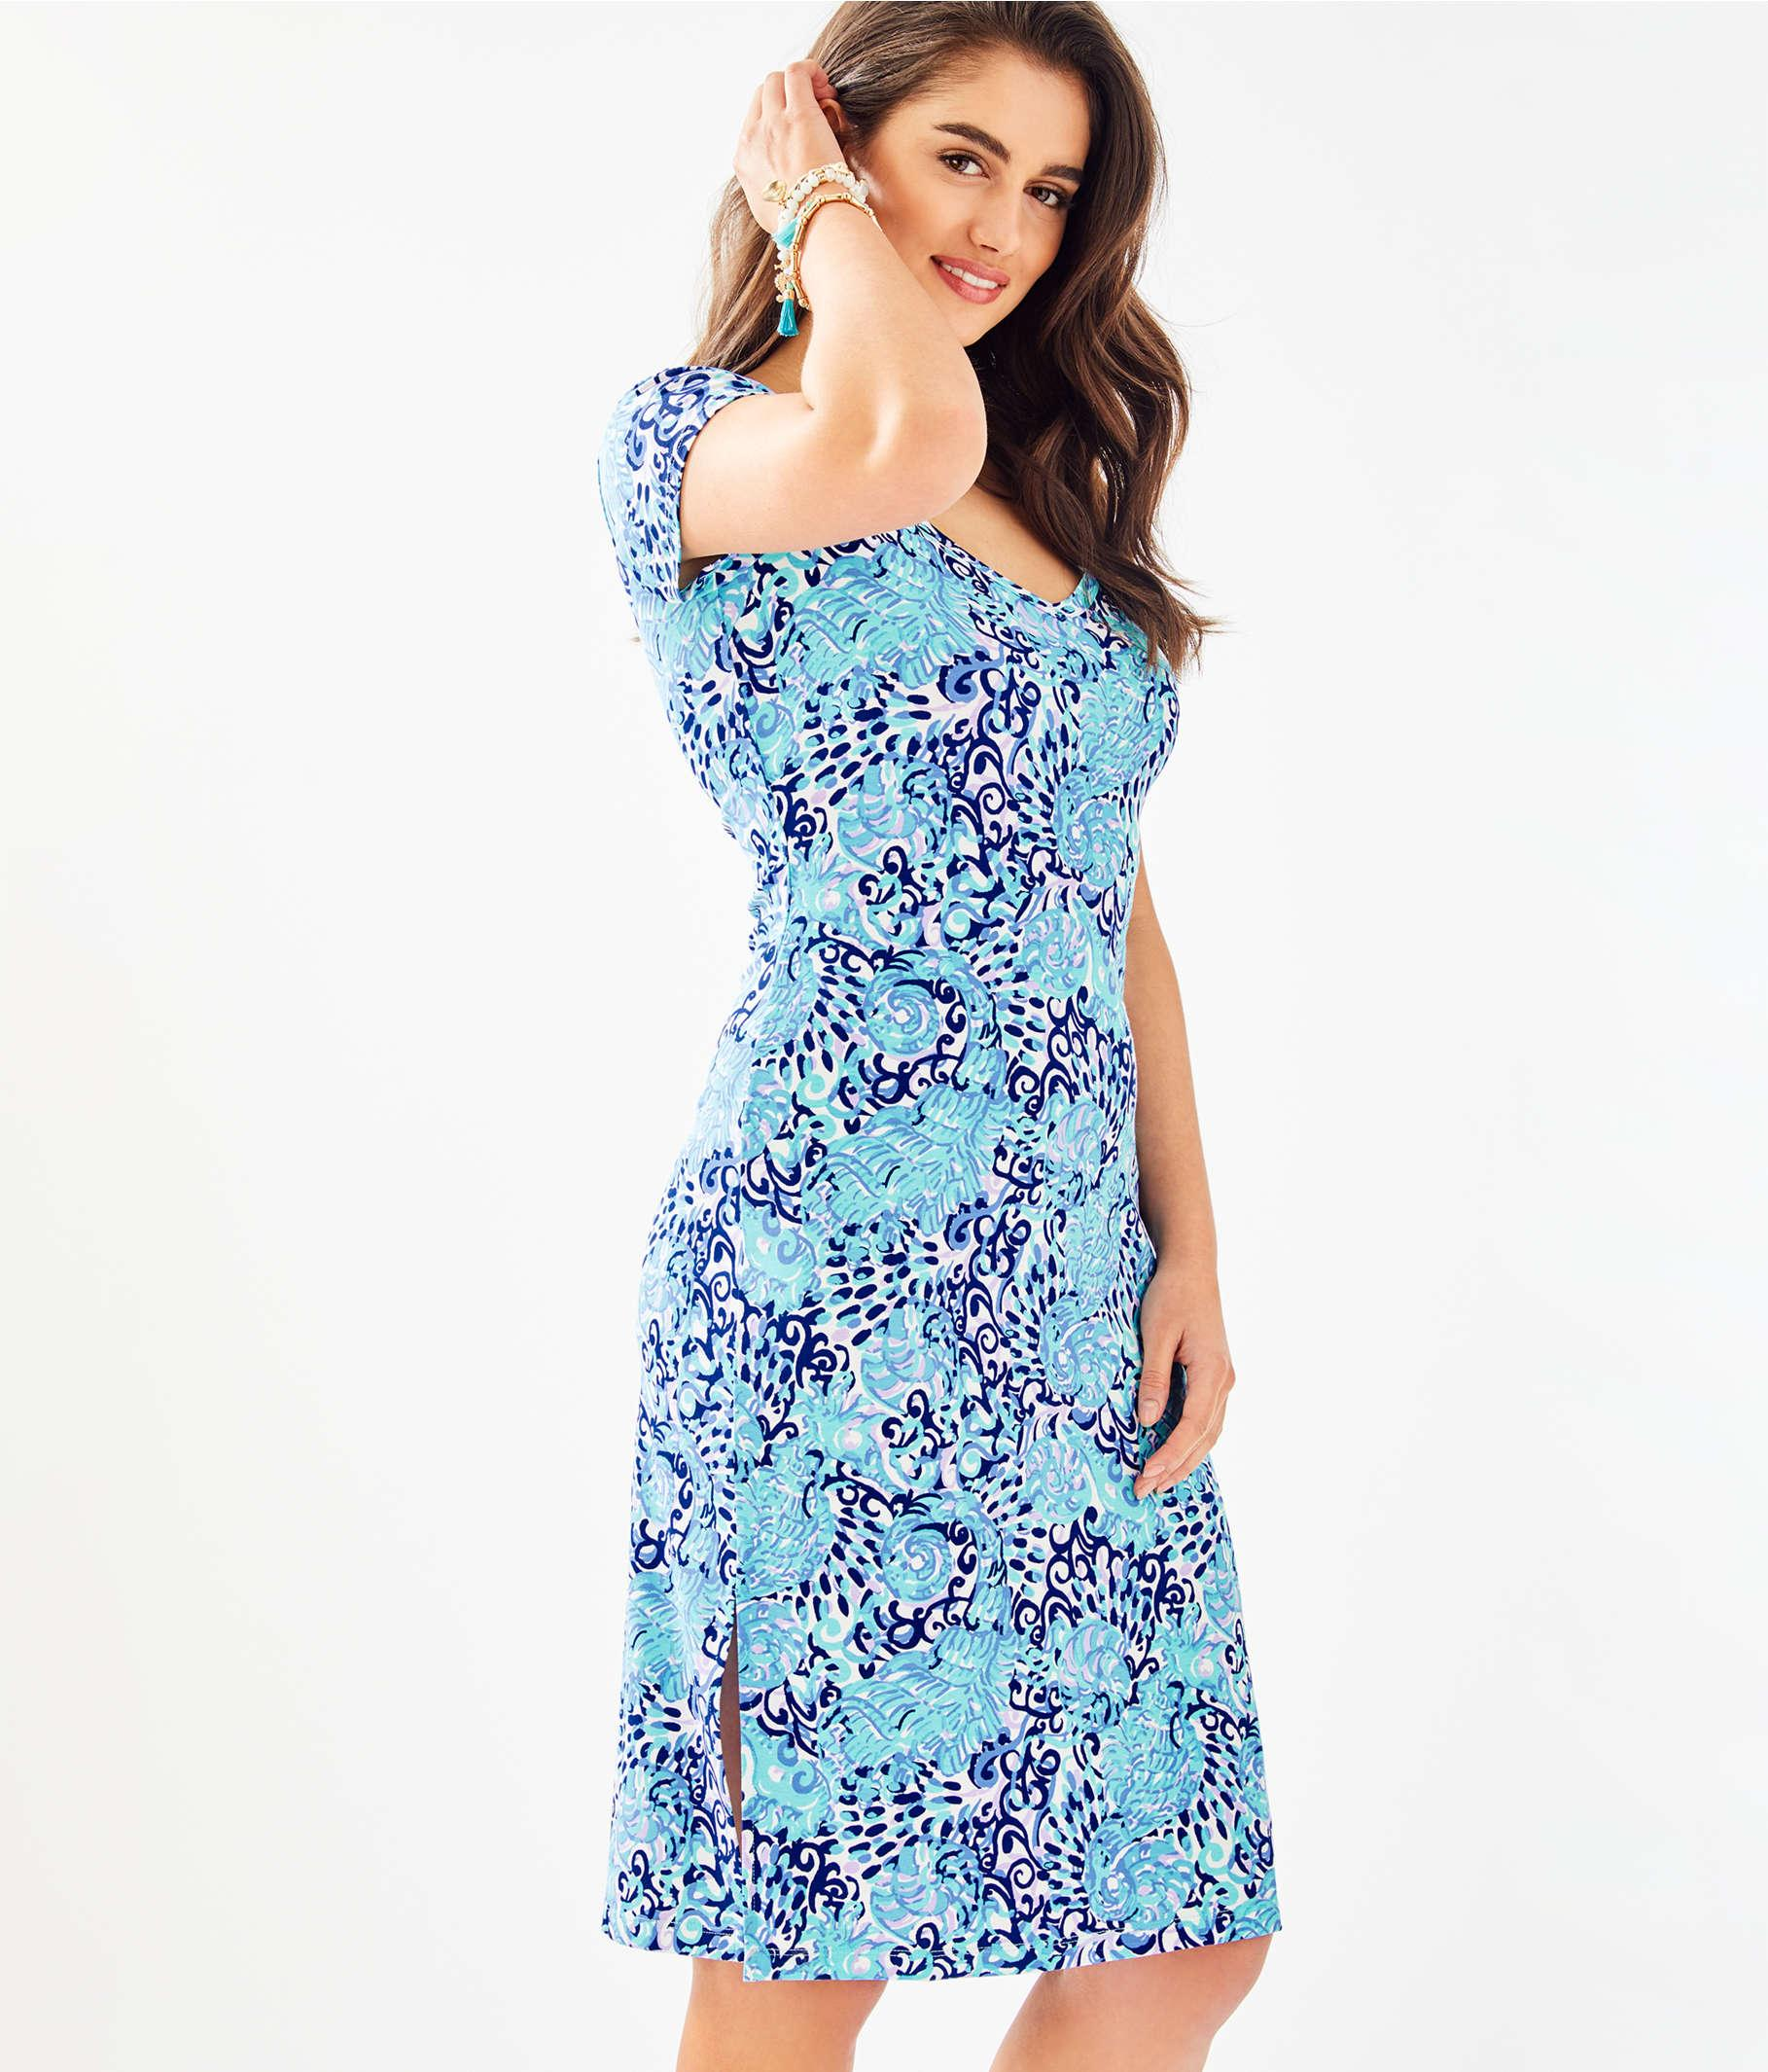 cabd3d9ea65704 Lilly Pulitzer Malin Midi Dress in Blue - Lyst